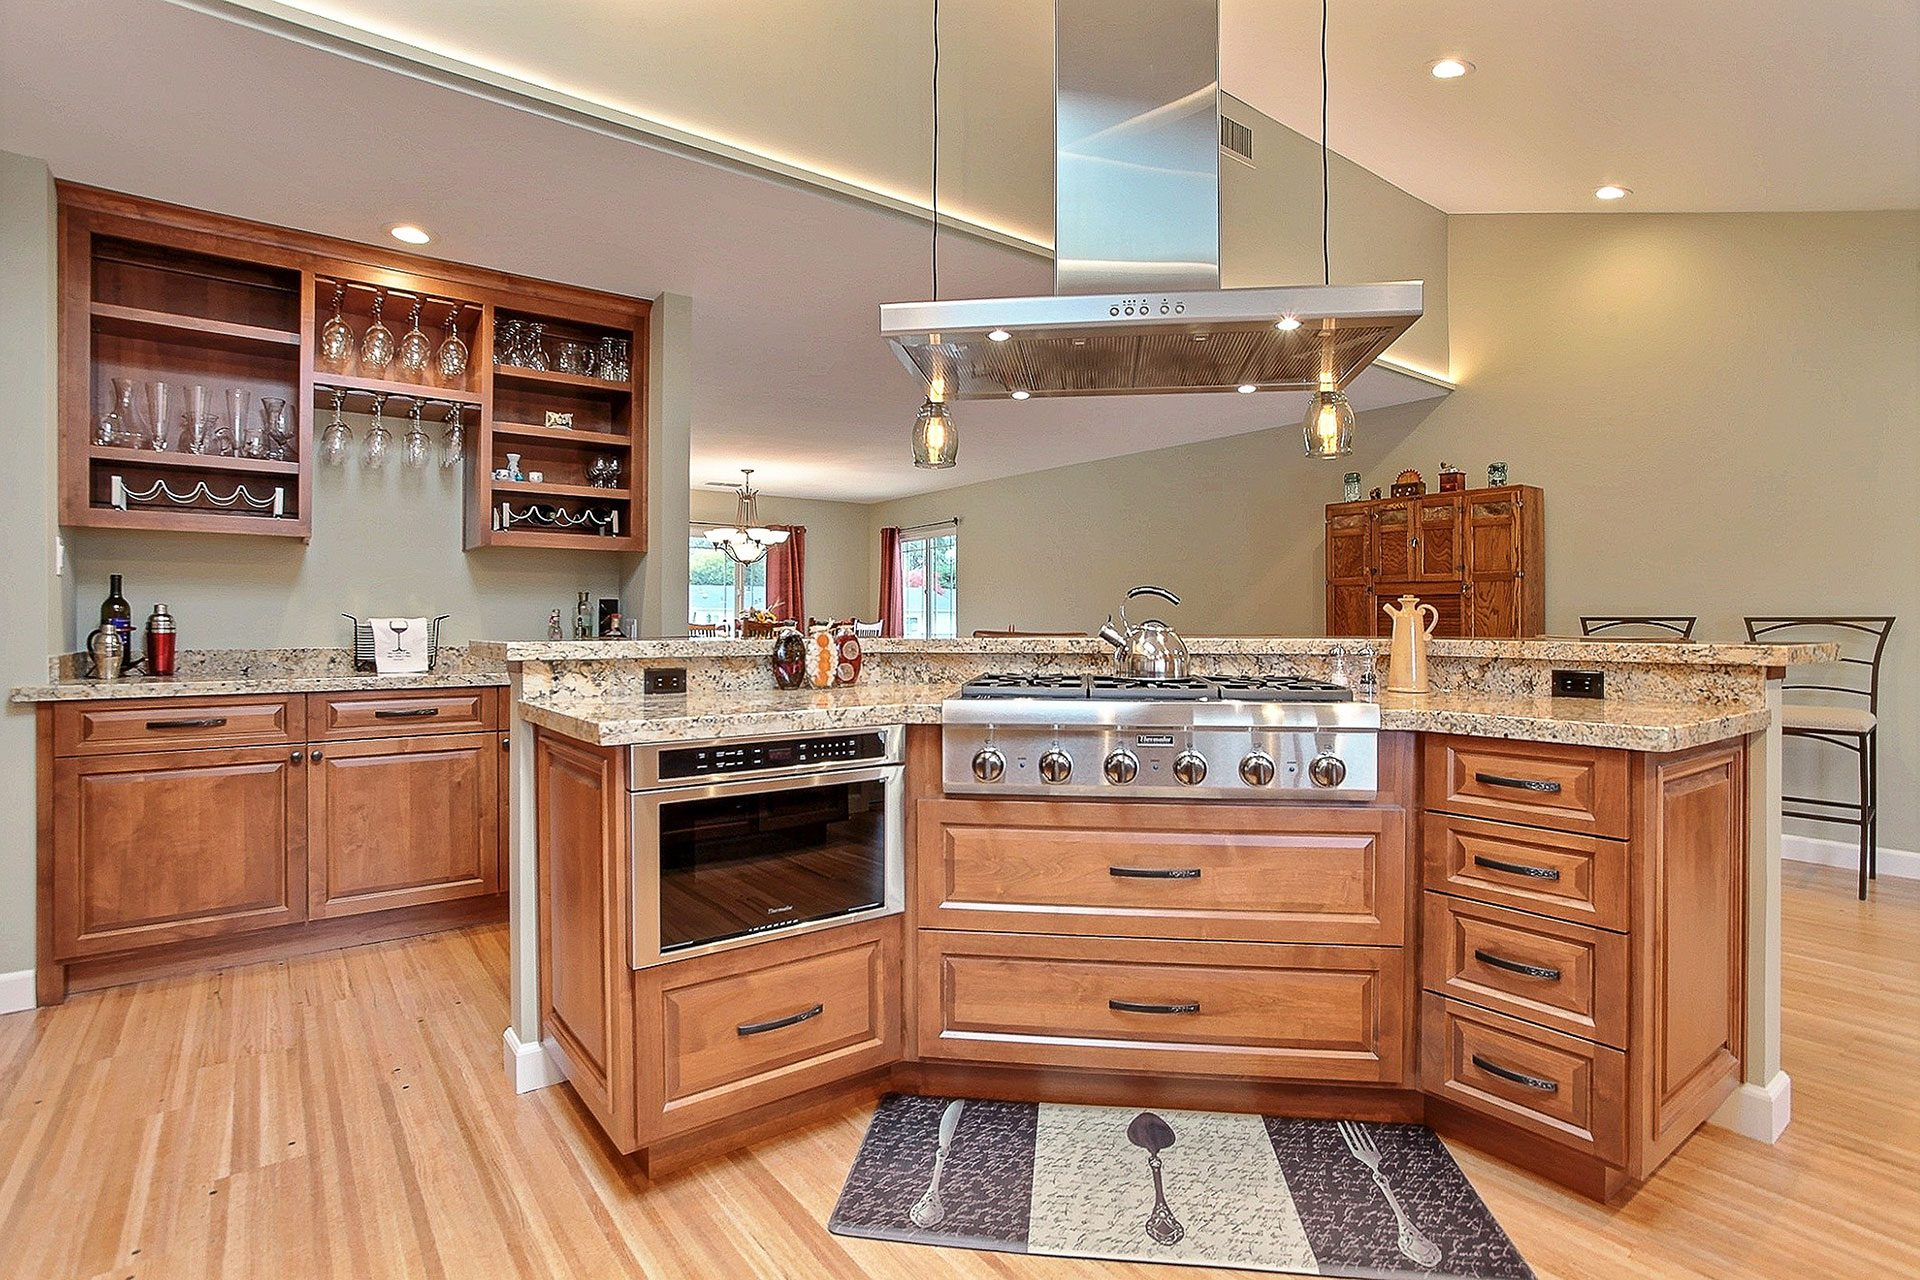 kitchen design walnut creek chef s culinary kitchen gordon reese design build gallery 609